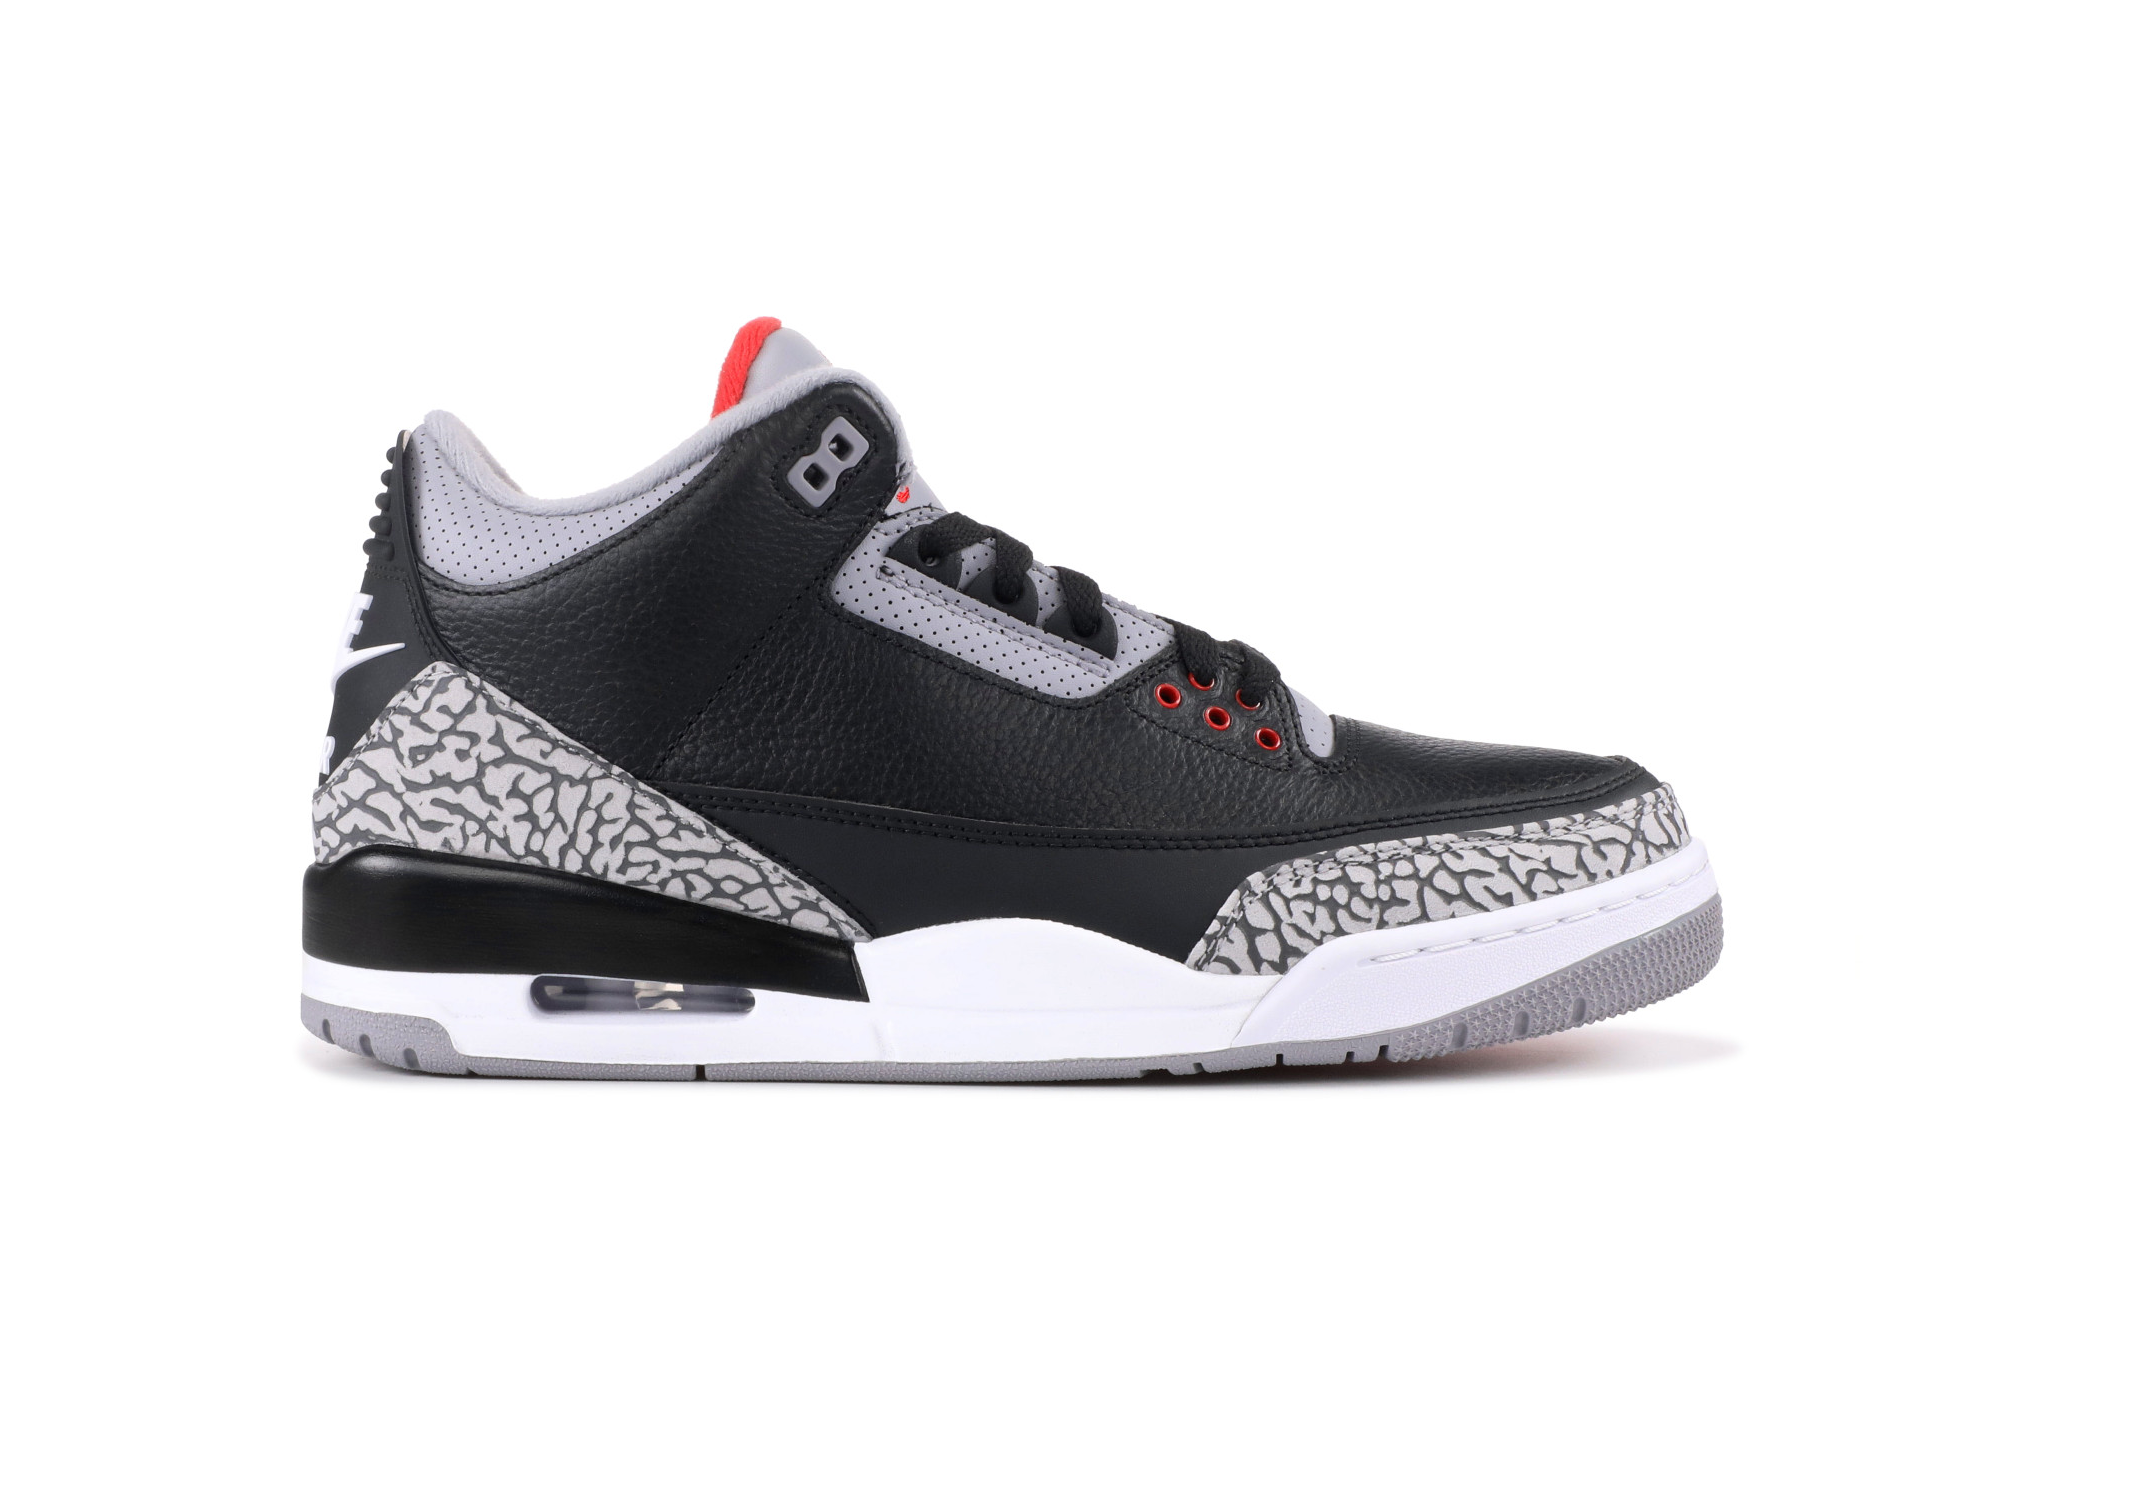 d05290ac208 Jordan 3 Black Cement (Nike Air) – Kerimago